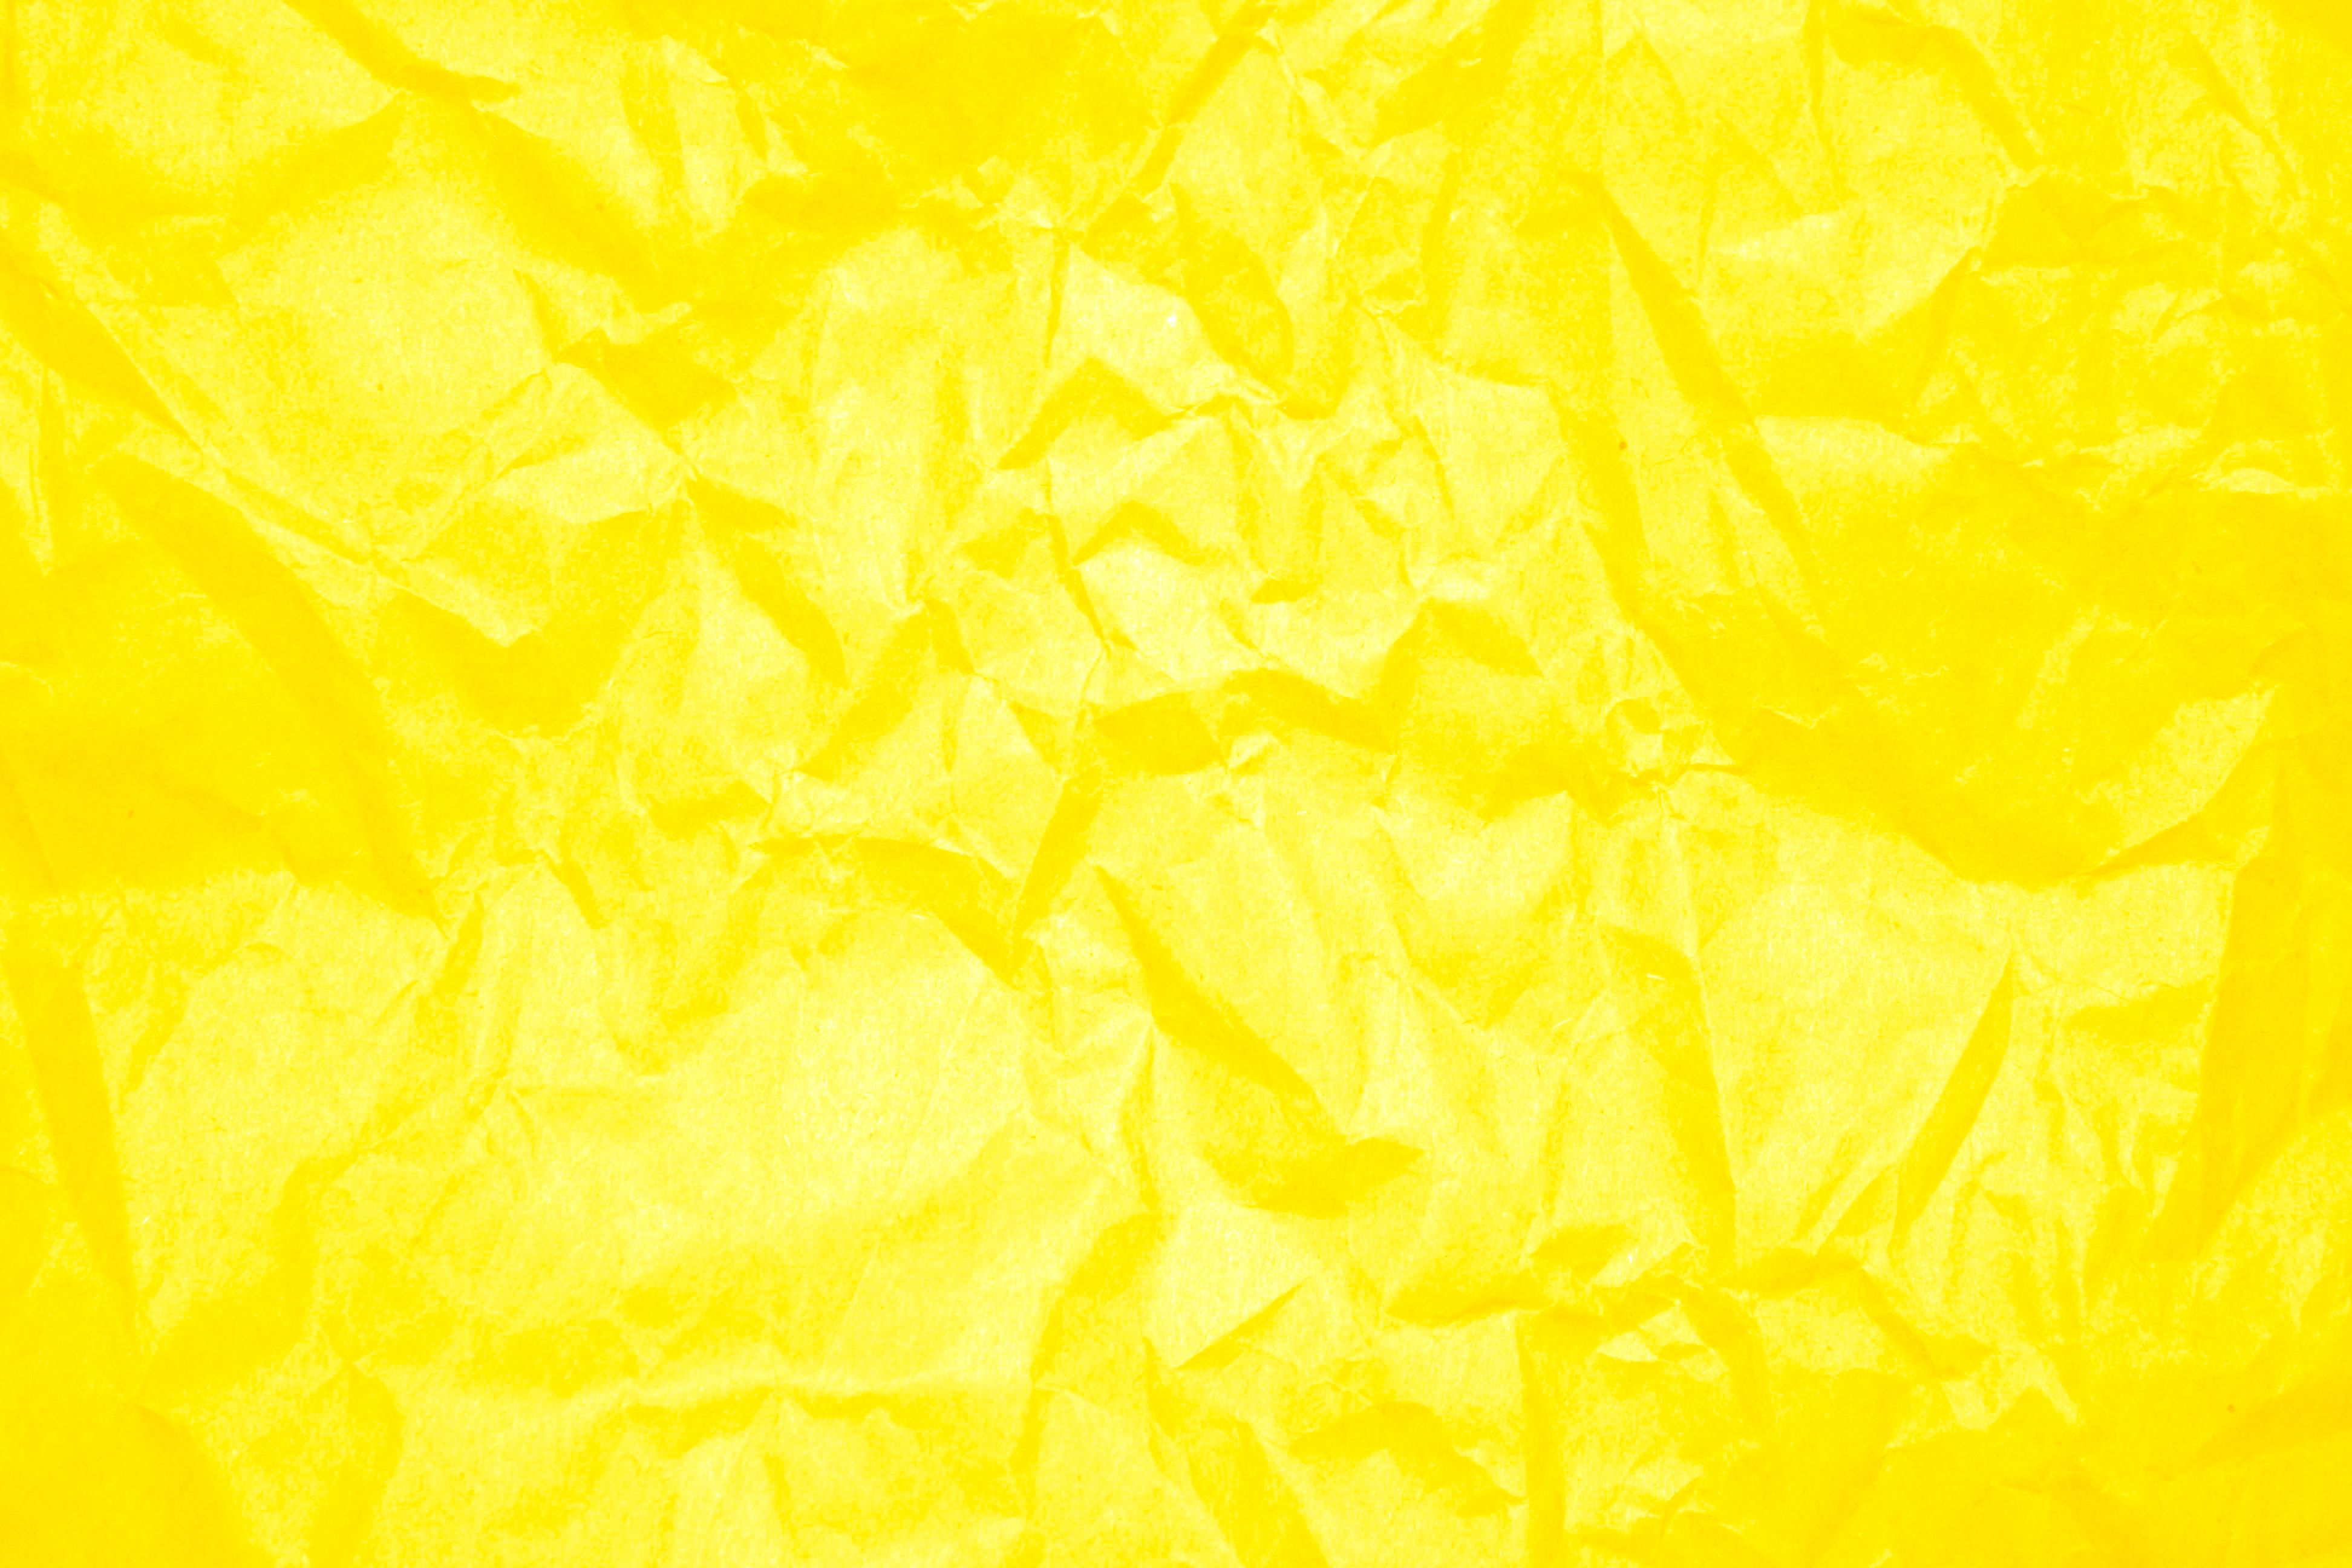 Pictures Of Yellow Backgrounds Tumblr Esearchresearch Info